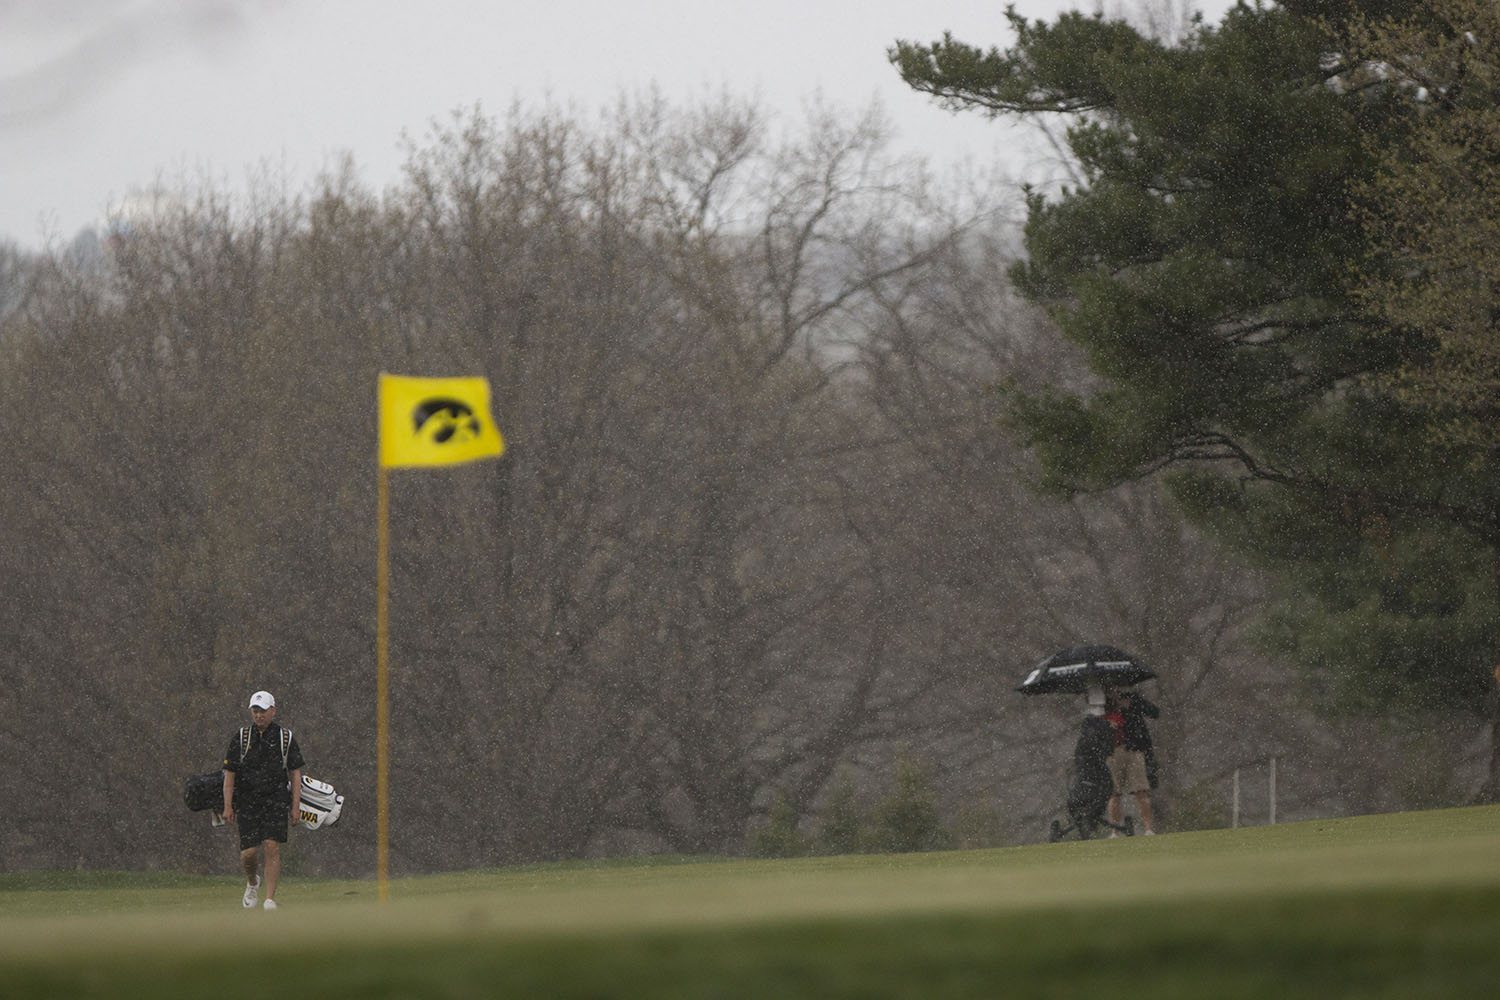 Iowa's Matthew Walker walks on the green in a downpour during the Hawkeye Invitational at Finkbine Golf Course on Saturday, April 15, 2017.